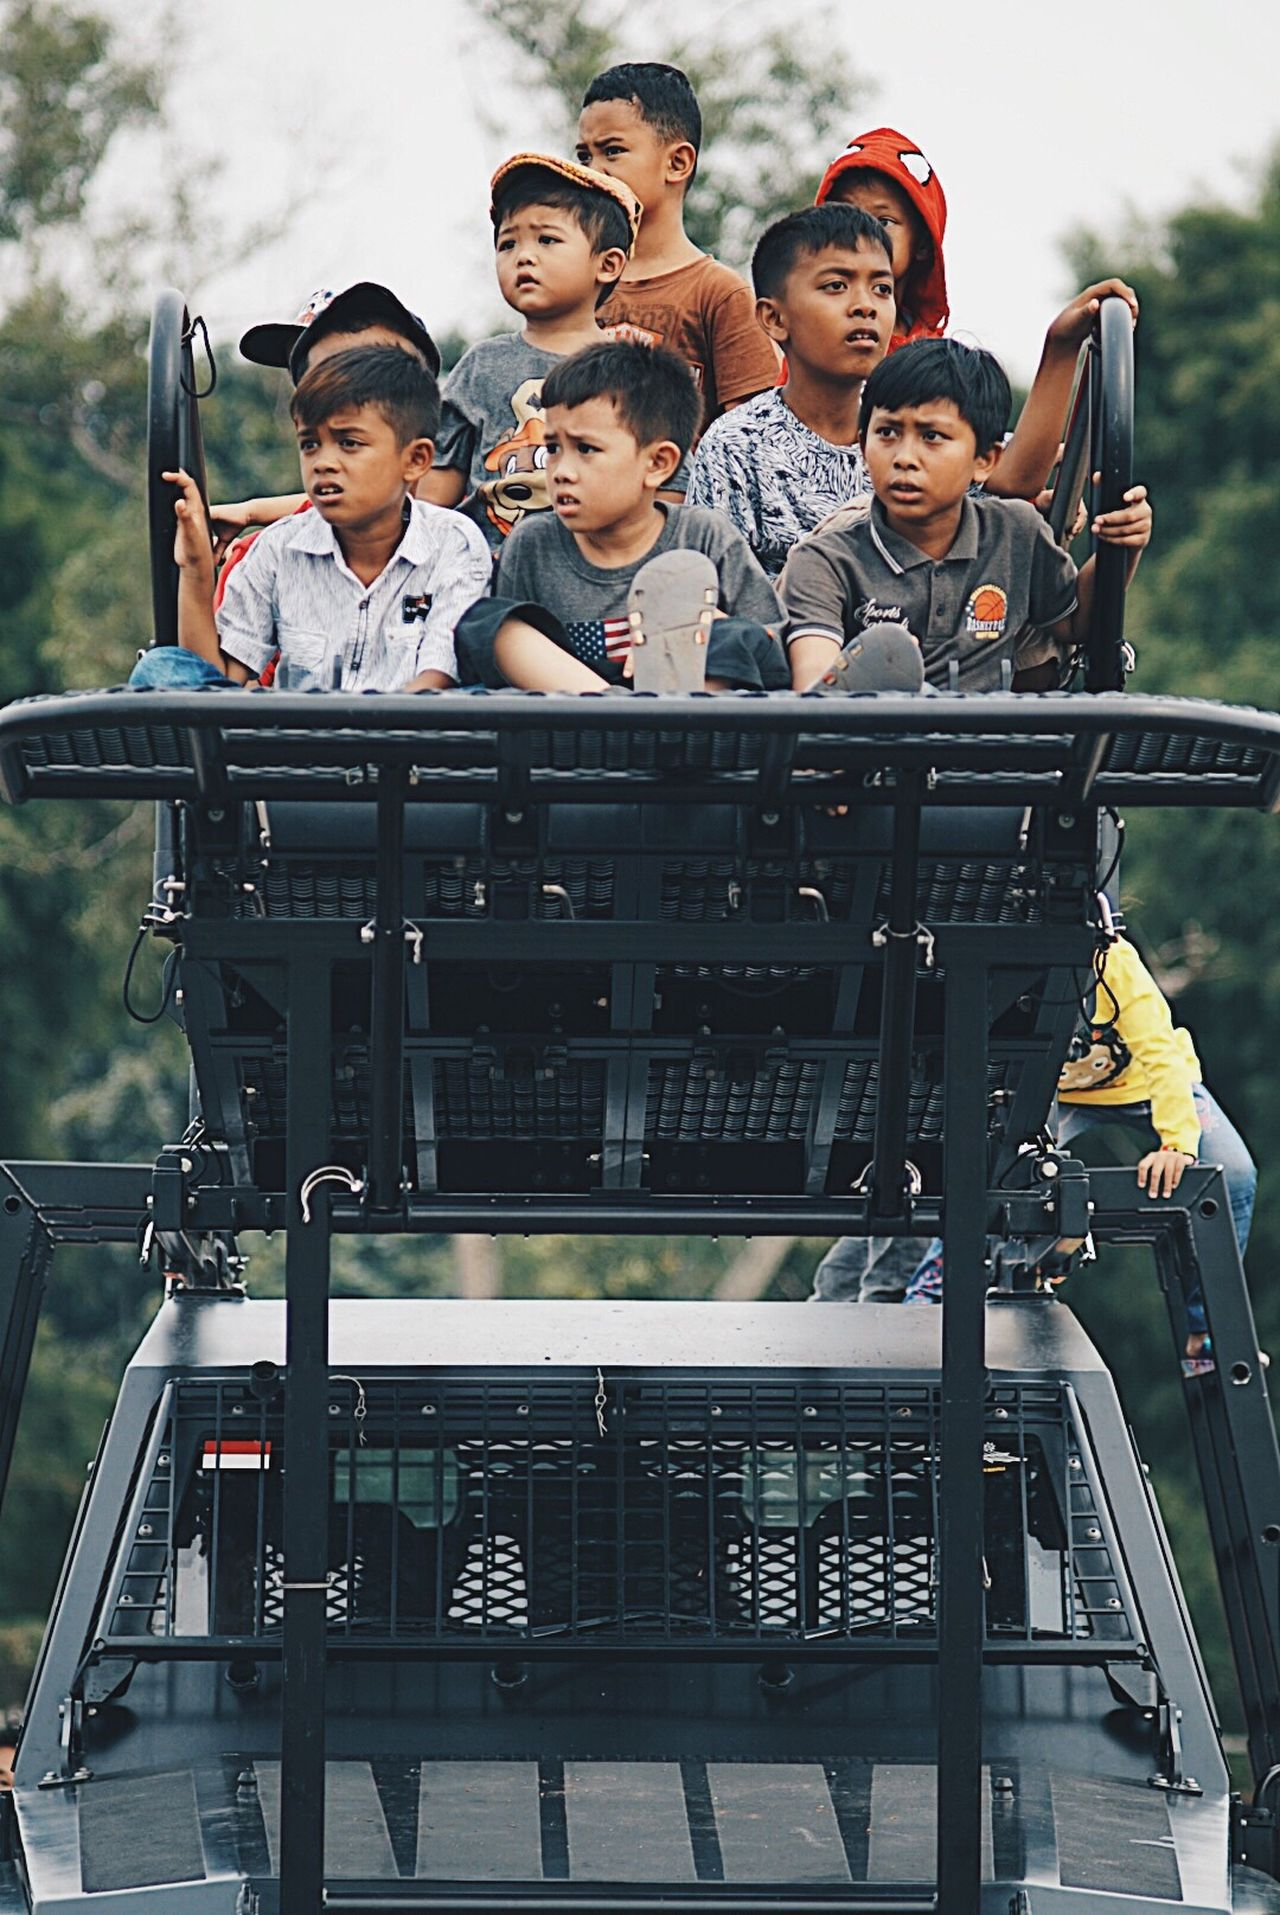 Boys Child Outdoors Sport Standing People Day Togetherness Lifestyles Sports Clothing Group Of People Adult Childhood Friendship Sports Team Teamwork Young Adult The Street Photographer The Street Photographer - 2017 EyeEm Awards